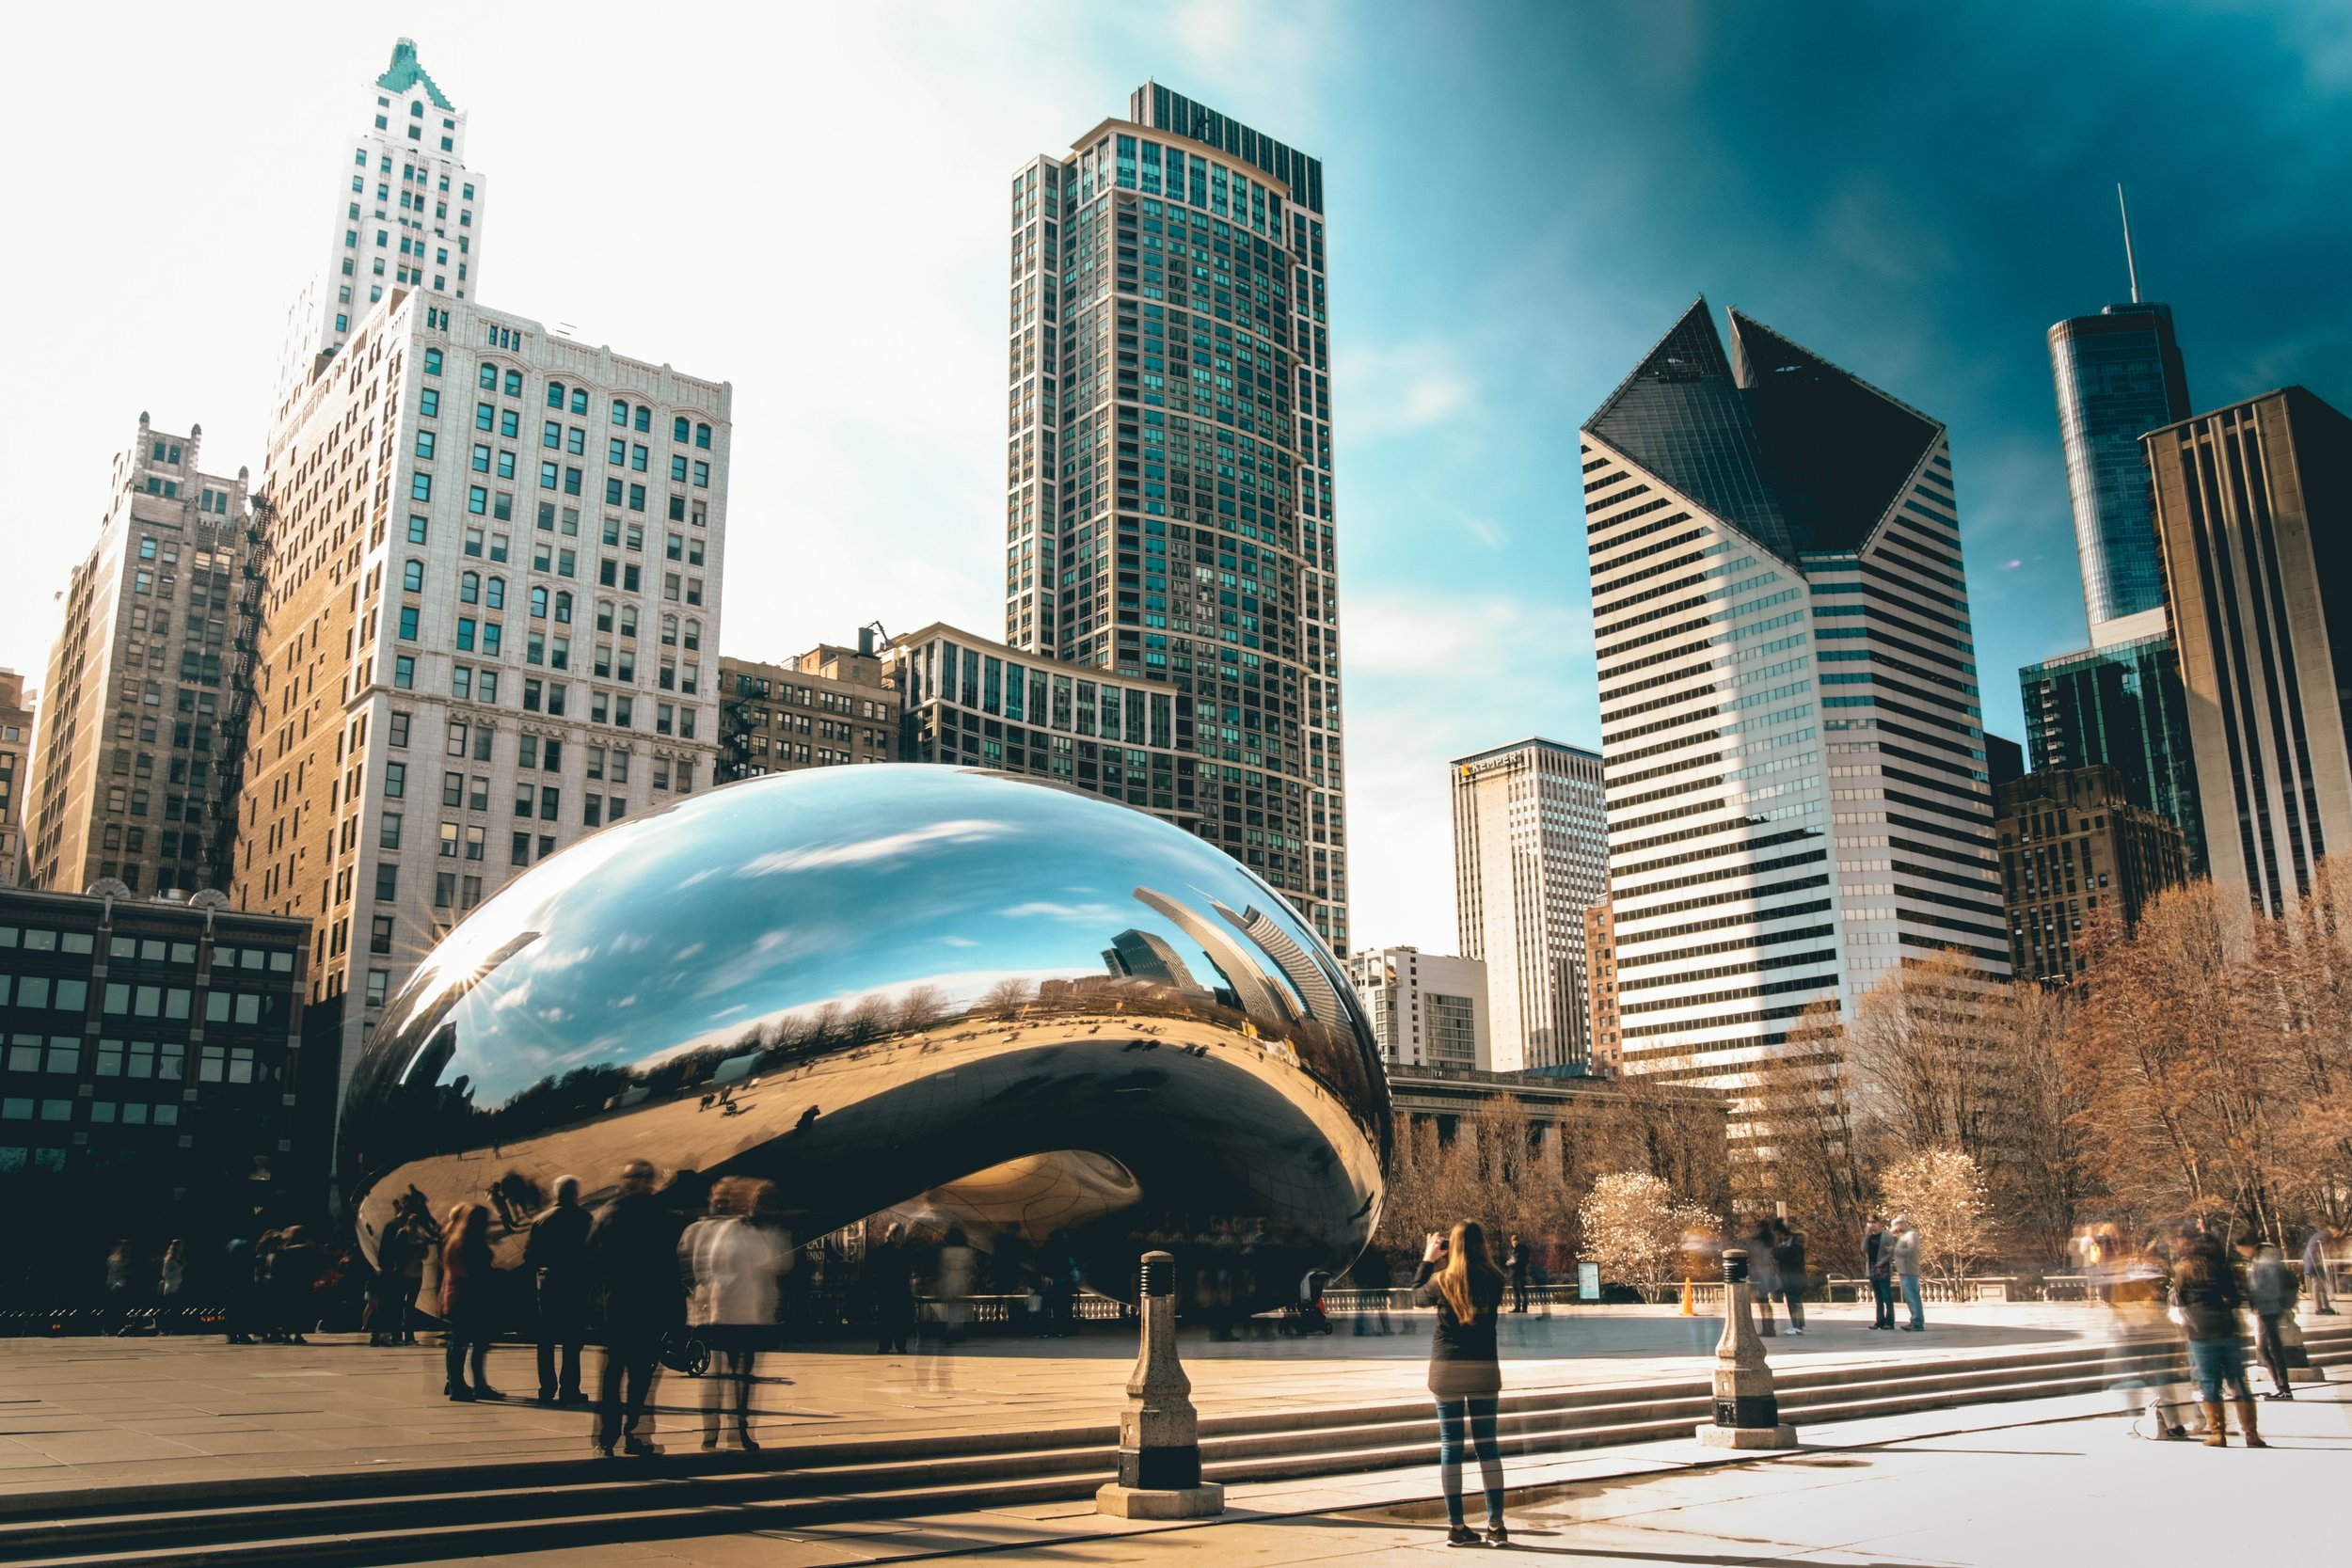 In Chicago, it's not a matter of 'if' you can find a coworking space - it's a matter of how will you choose from so many options!